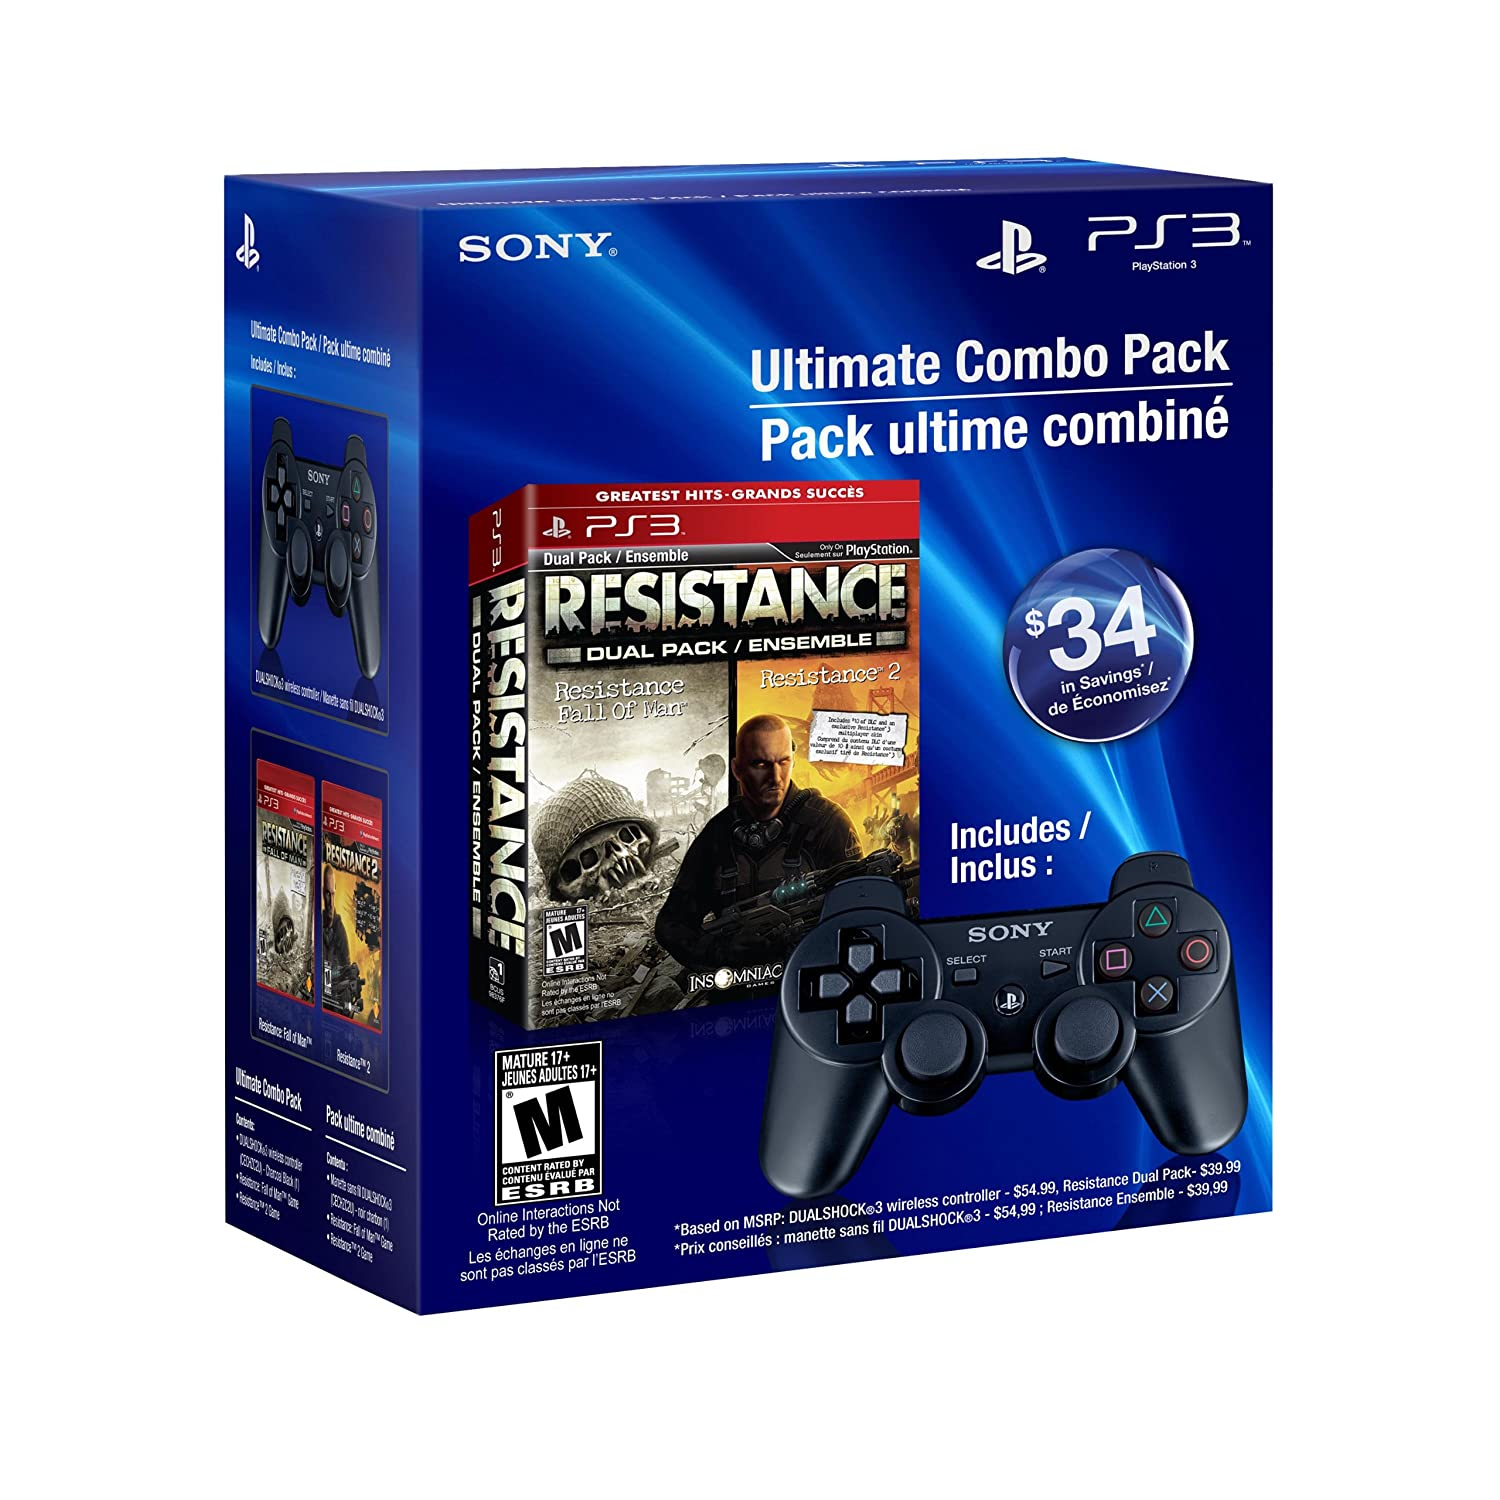 Resistance Raleigh Mall Dual Pack DUALSHOCK3 Super Special SALE held wireless Playstat - controller